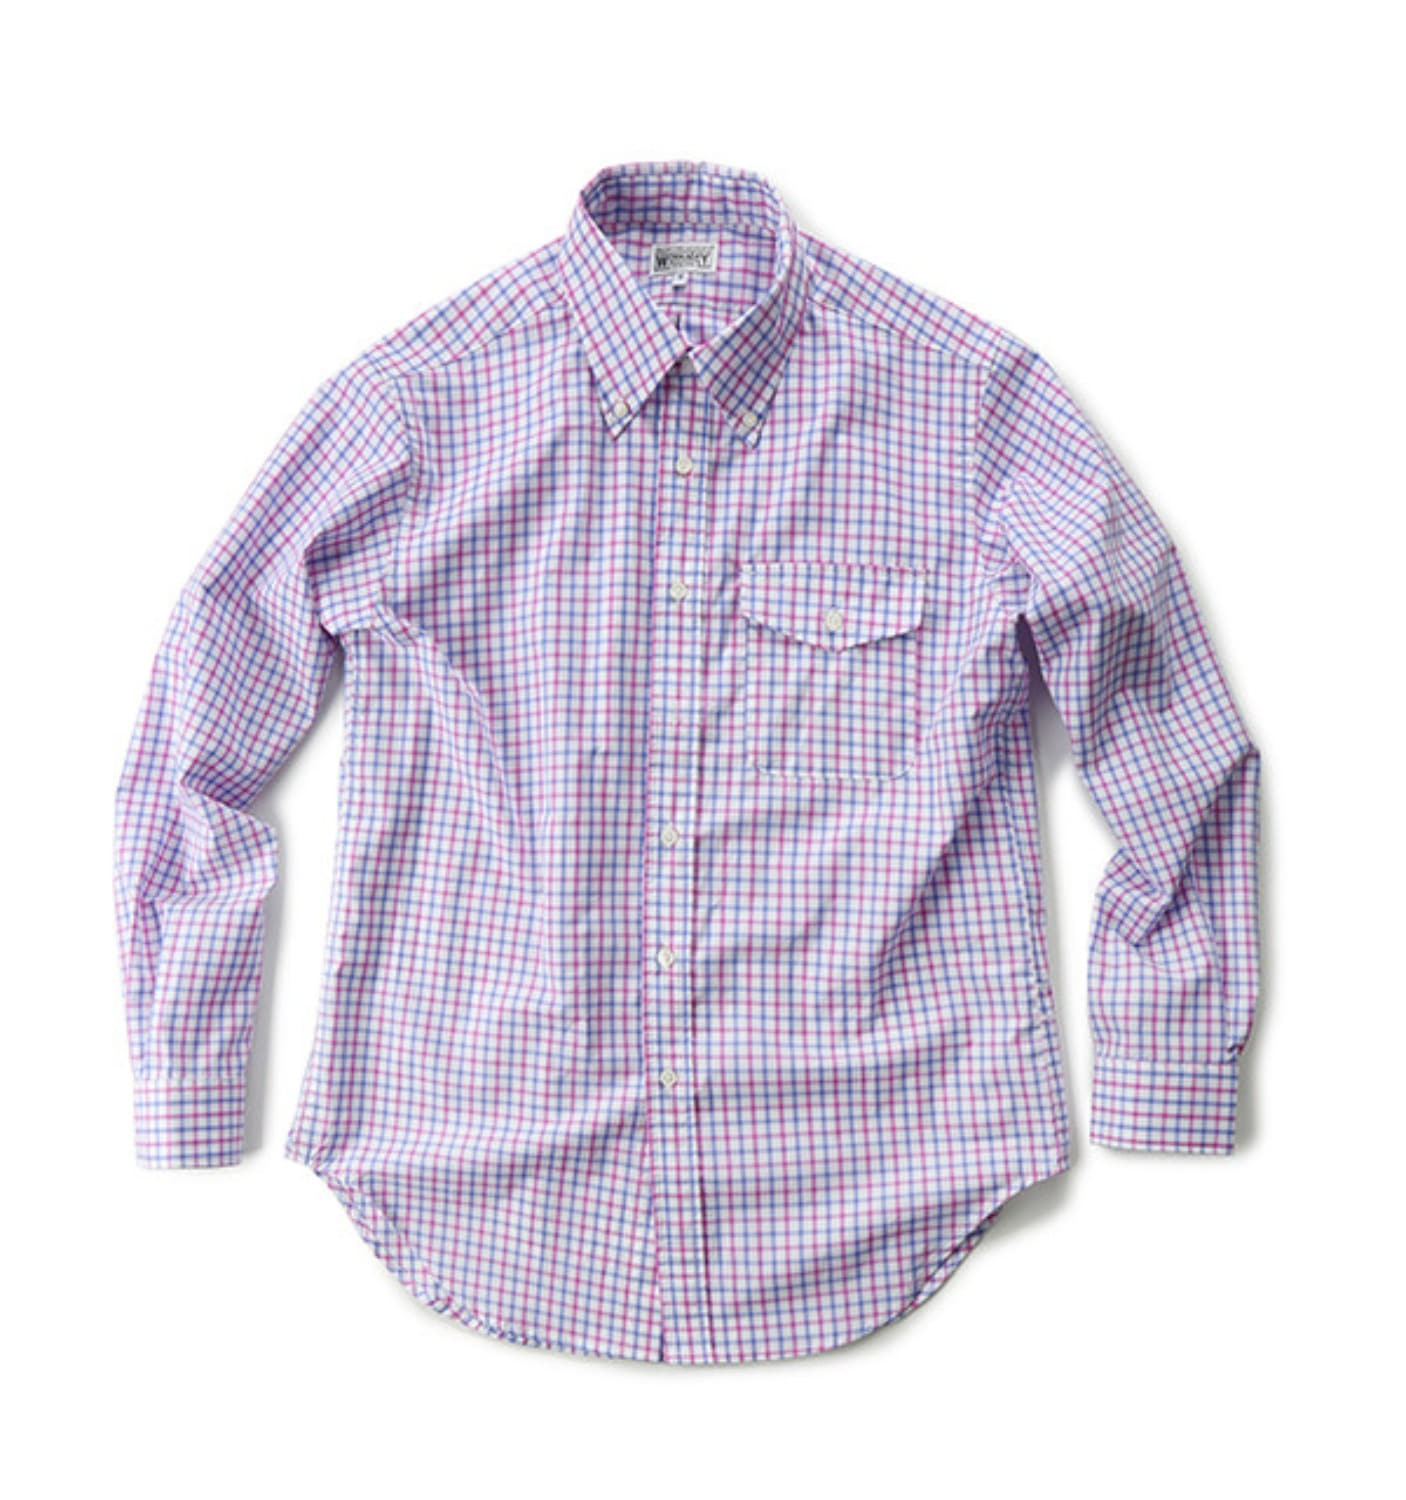 PINK/BLUE COTTON GRAPH CHECK BD SHIRT